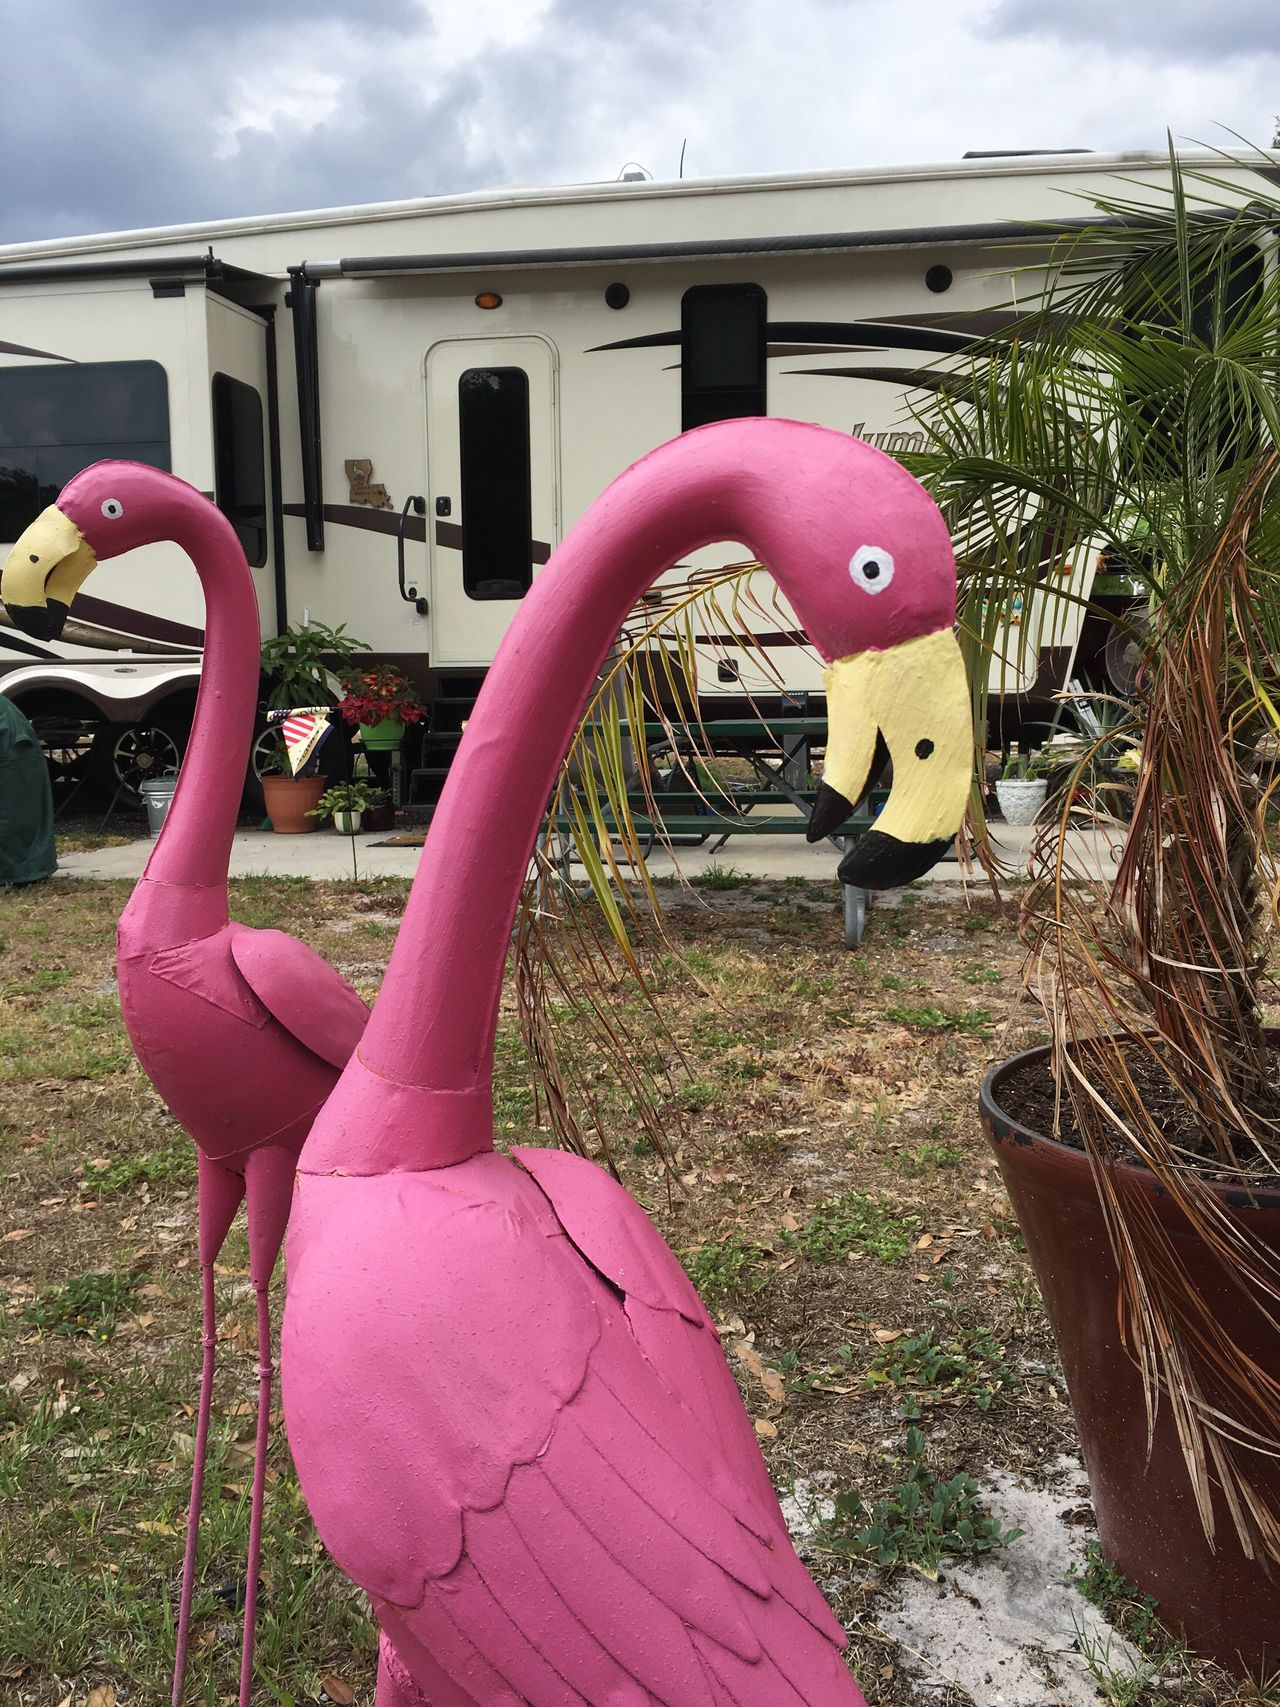 Outdoors Pink Color Day No People Sky Close-up Americana Scenes Flamingo Yard Art Metal Birds Florida Life Florida Rv Park